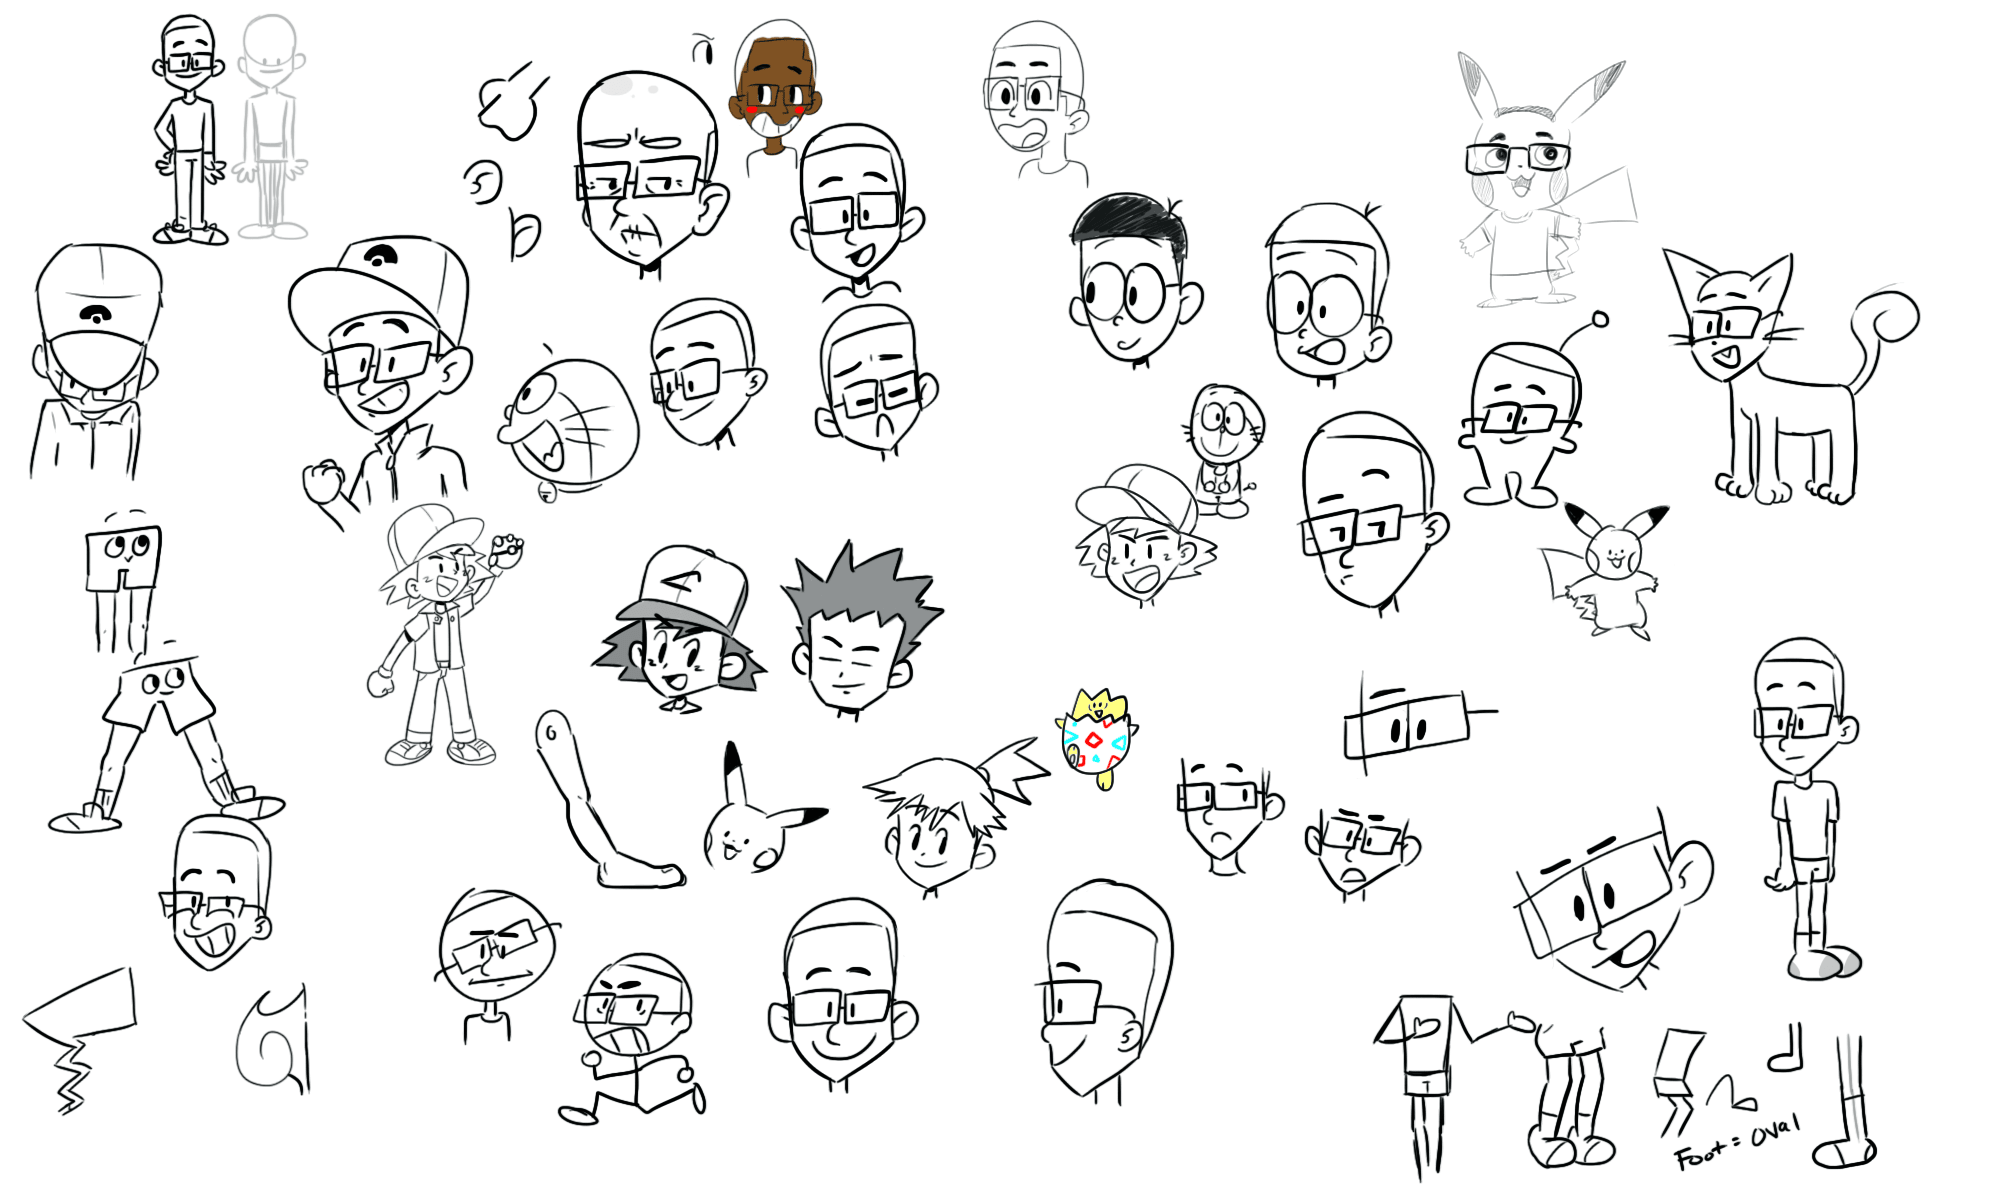 Ash and Friends Drawings 12/16/17